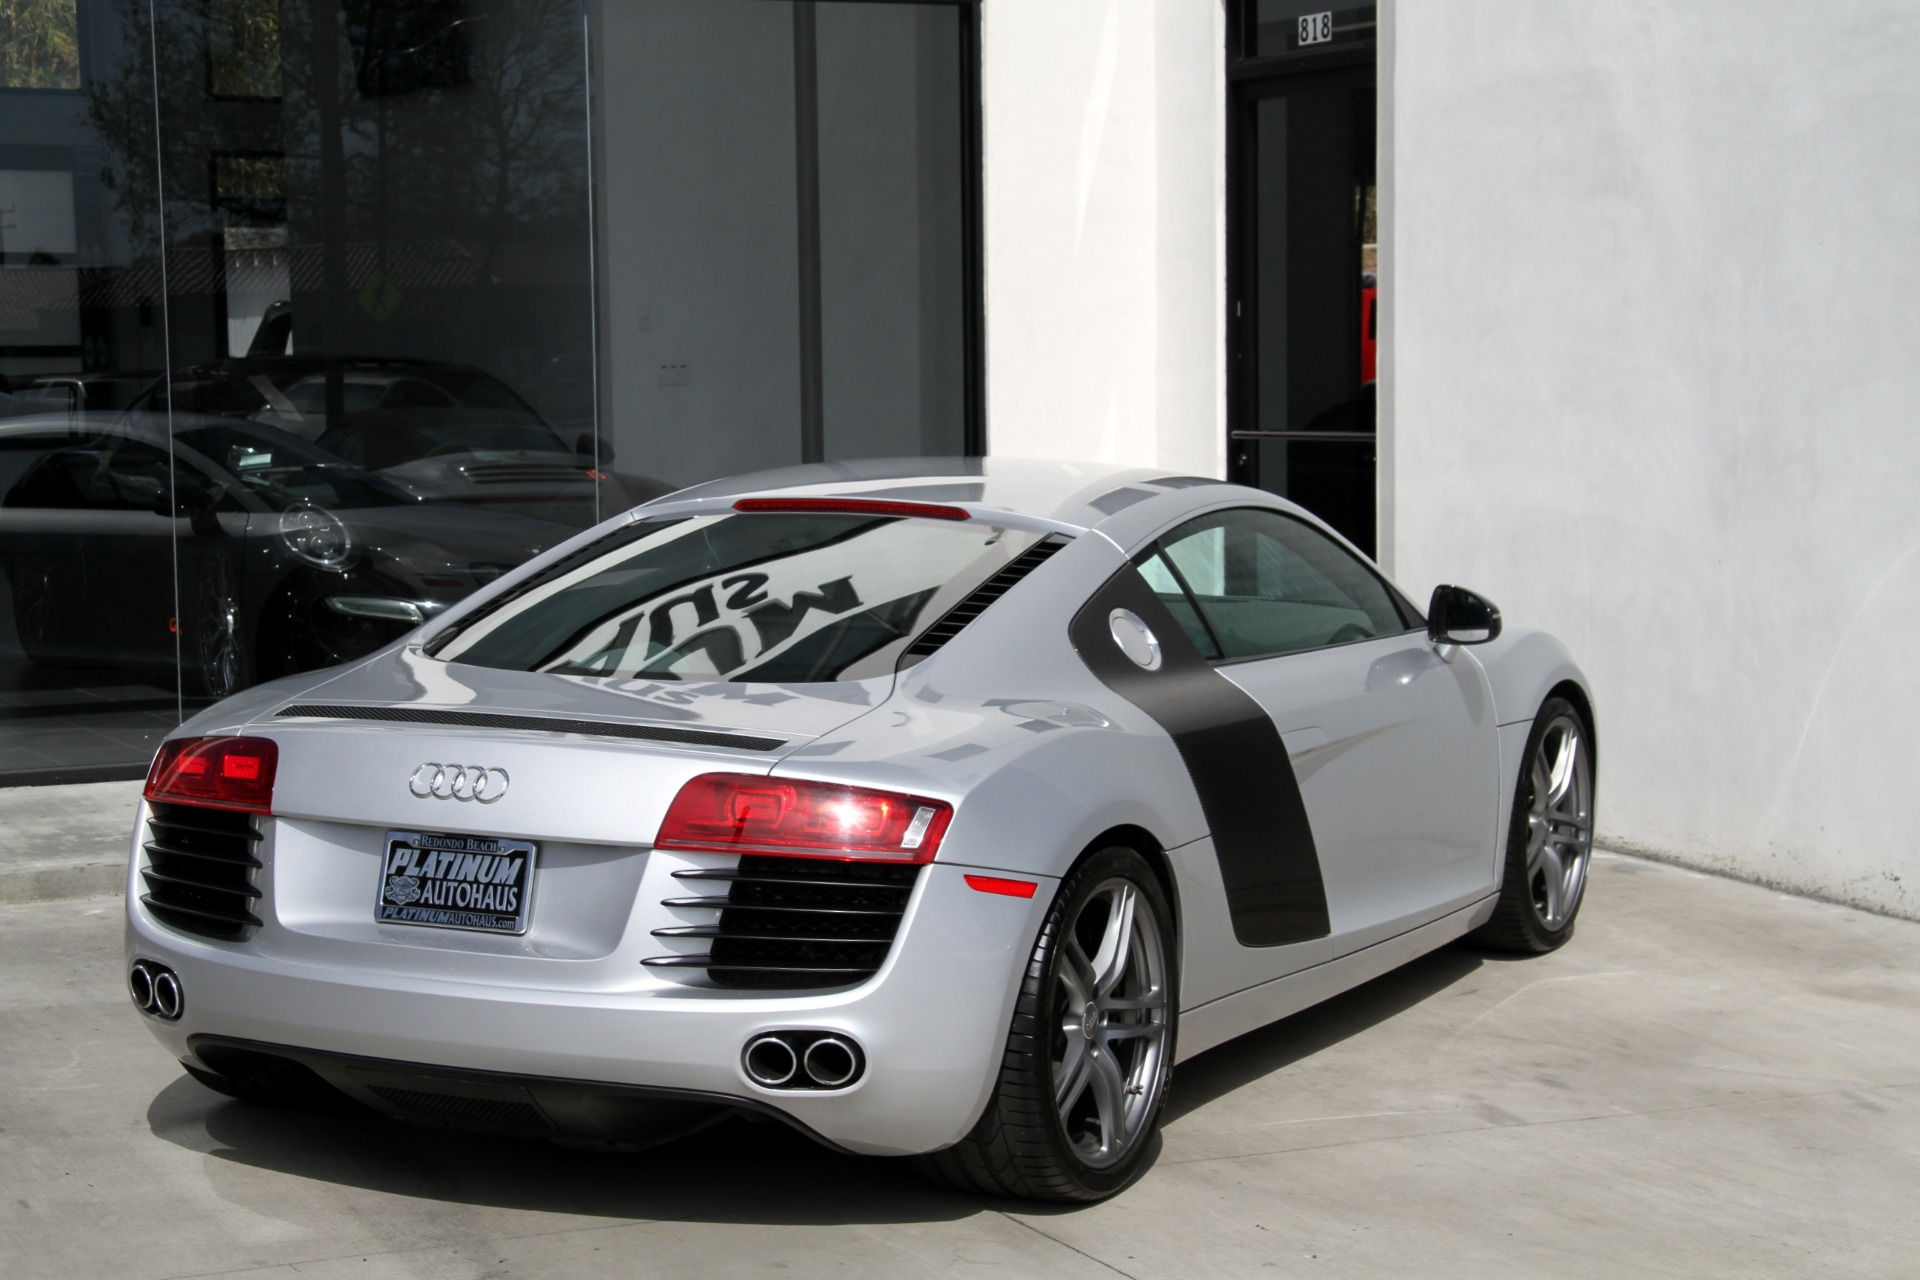 Audi Dealership Near Me >> 2012 Audi R8 4.2 quattro *** RARE MANUAL TRANSMISSION *** Stock # 6150 for sale near Redondo ...